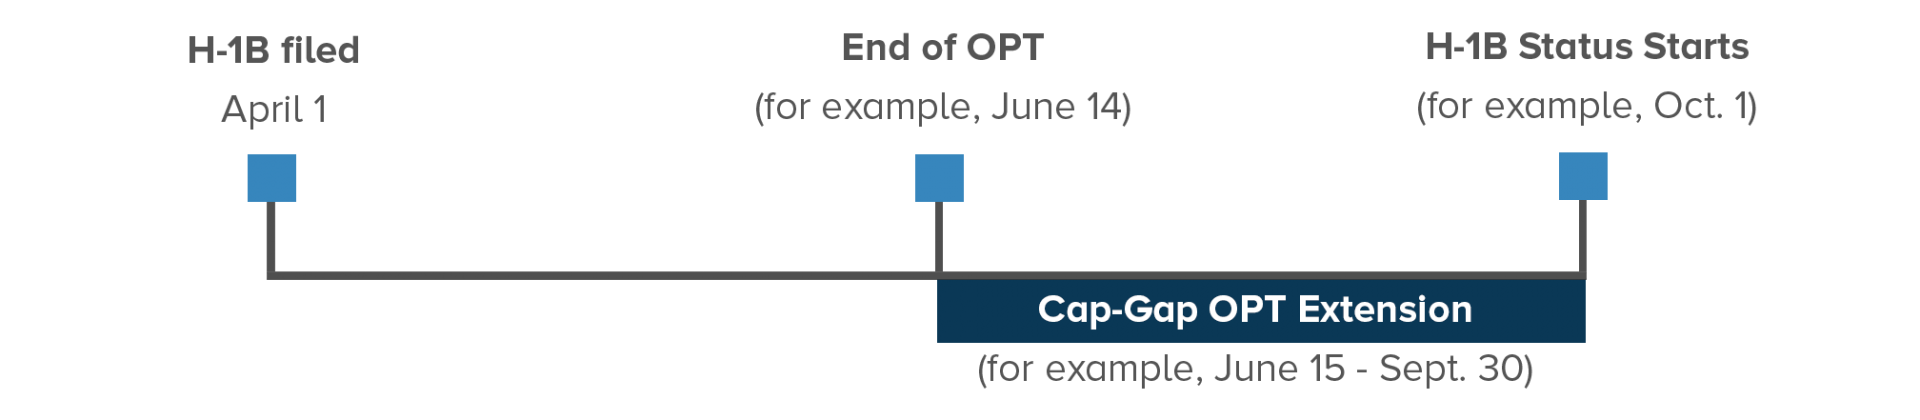 Cap-Gap OPT Extension | ISSO